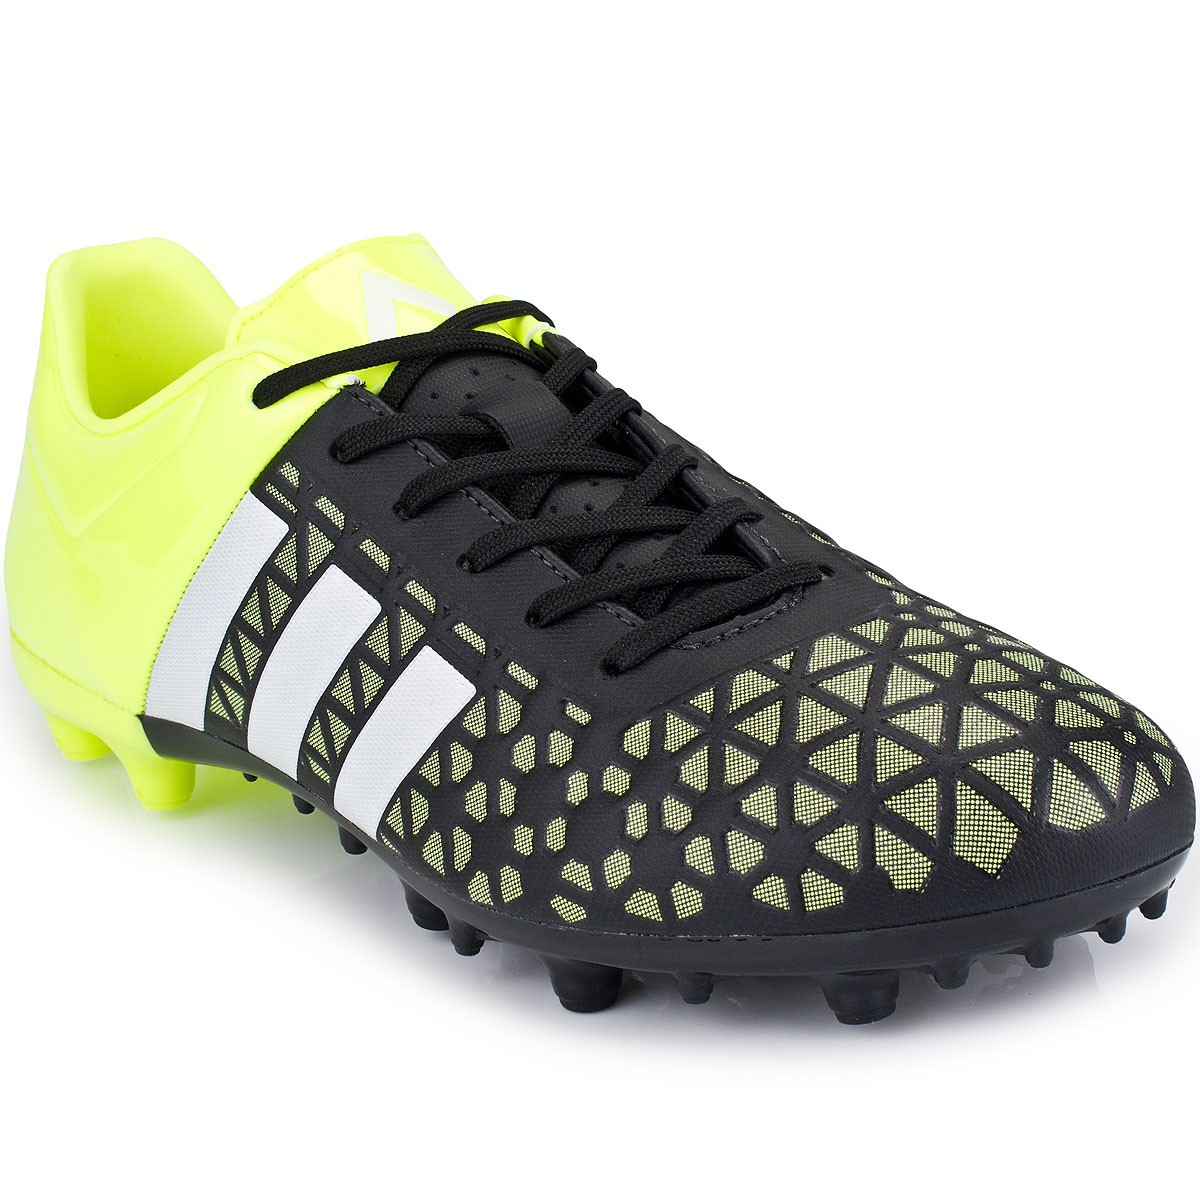 chuteira adidas ace 15.3 salao in on wholesale 3b66f 945a1 ... 25433a14f2986